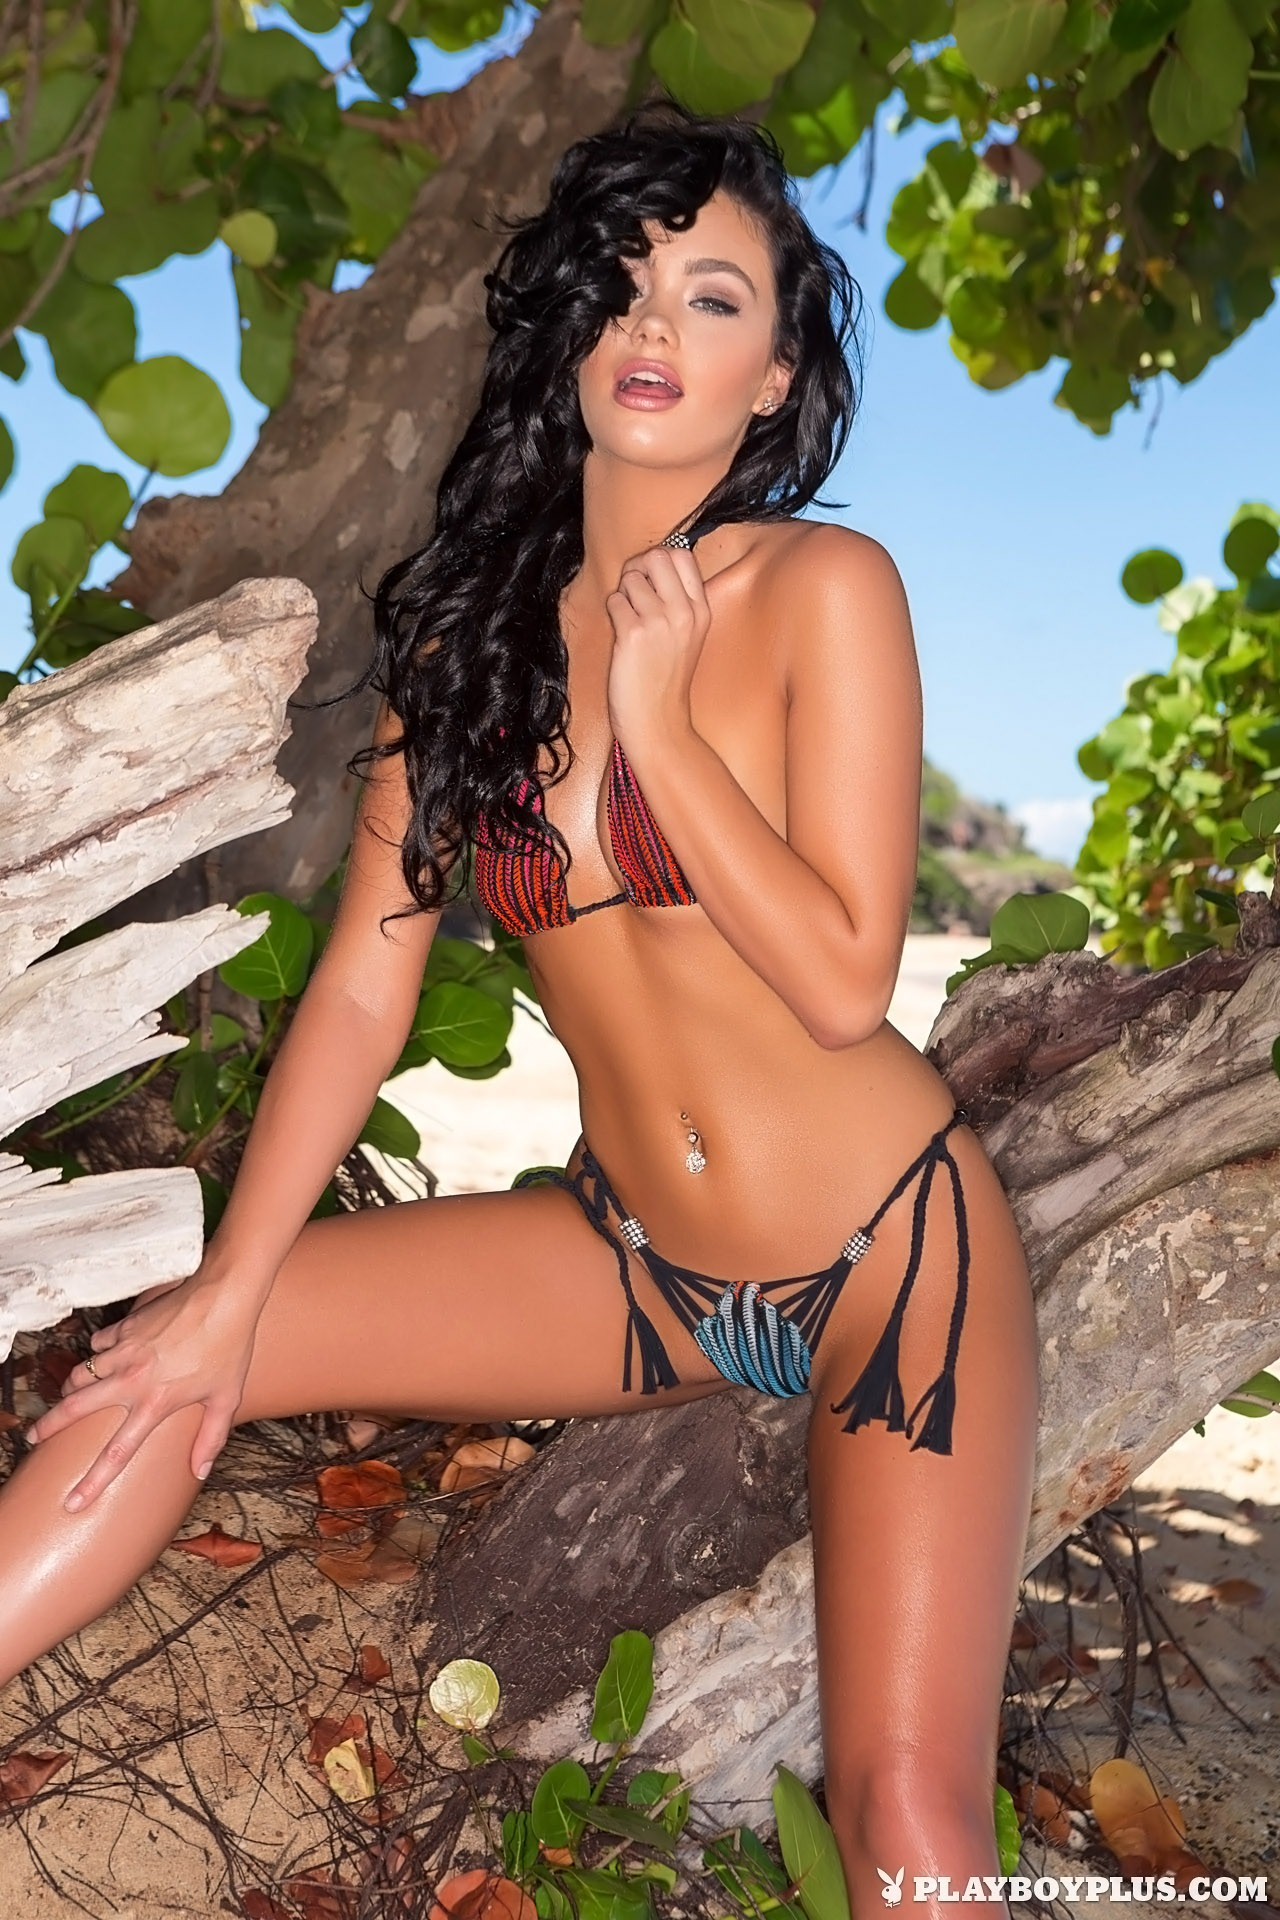 Kristie Taylor in Private Paradise for Playboy | Daily Girls @ Female Update